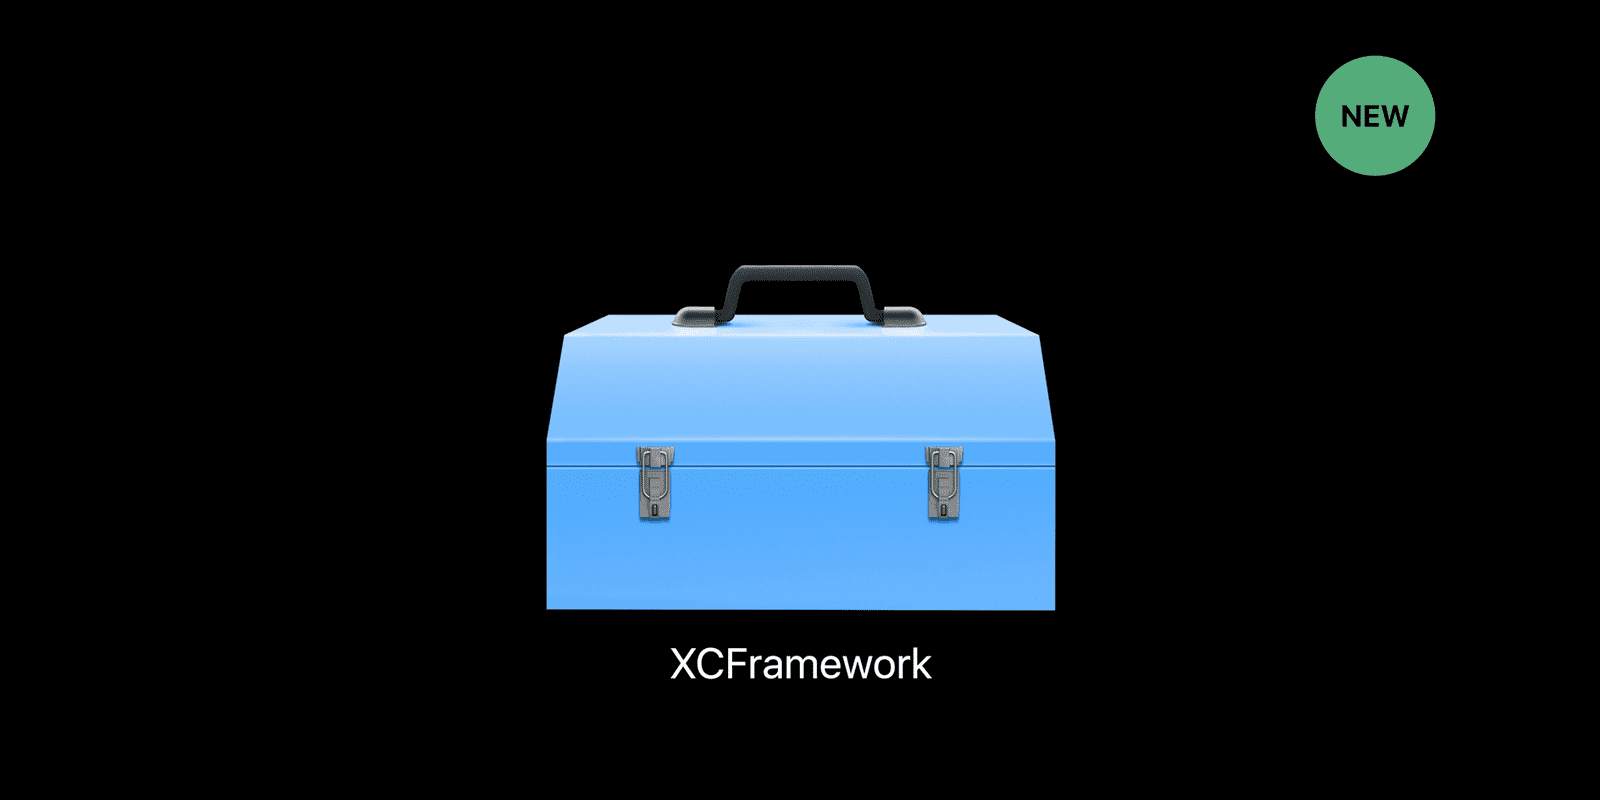 Building XCFrameworks with Xcode 11